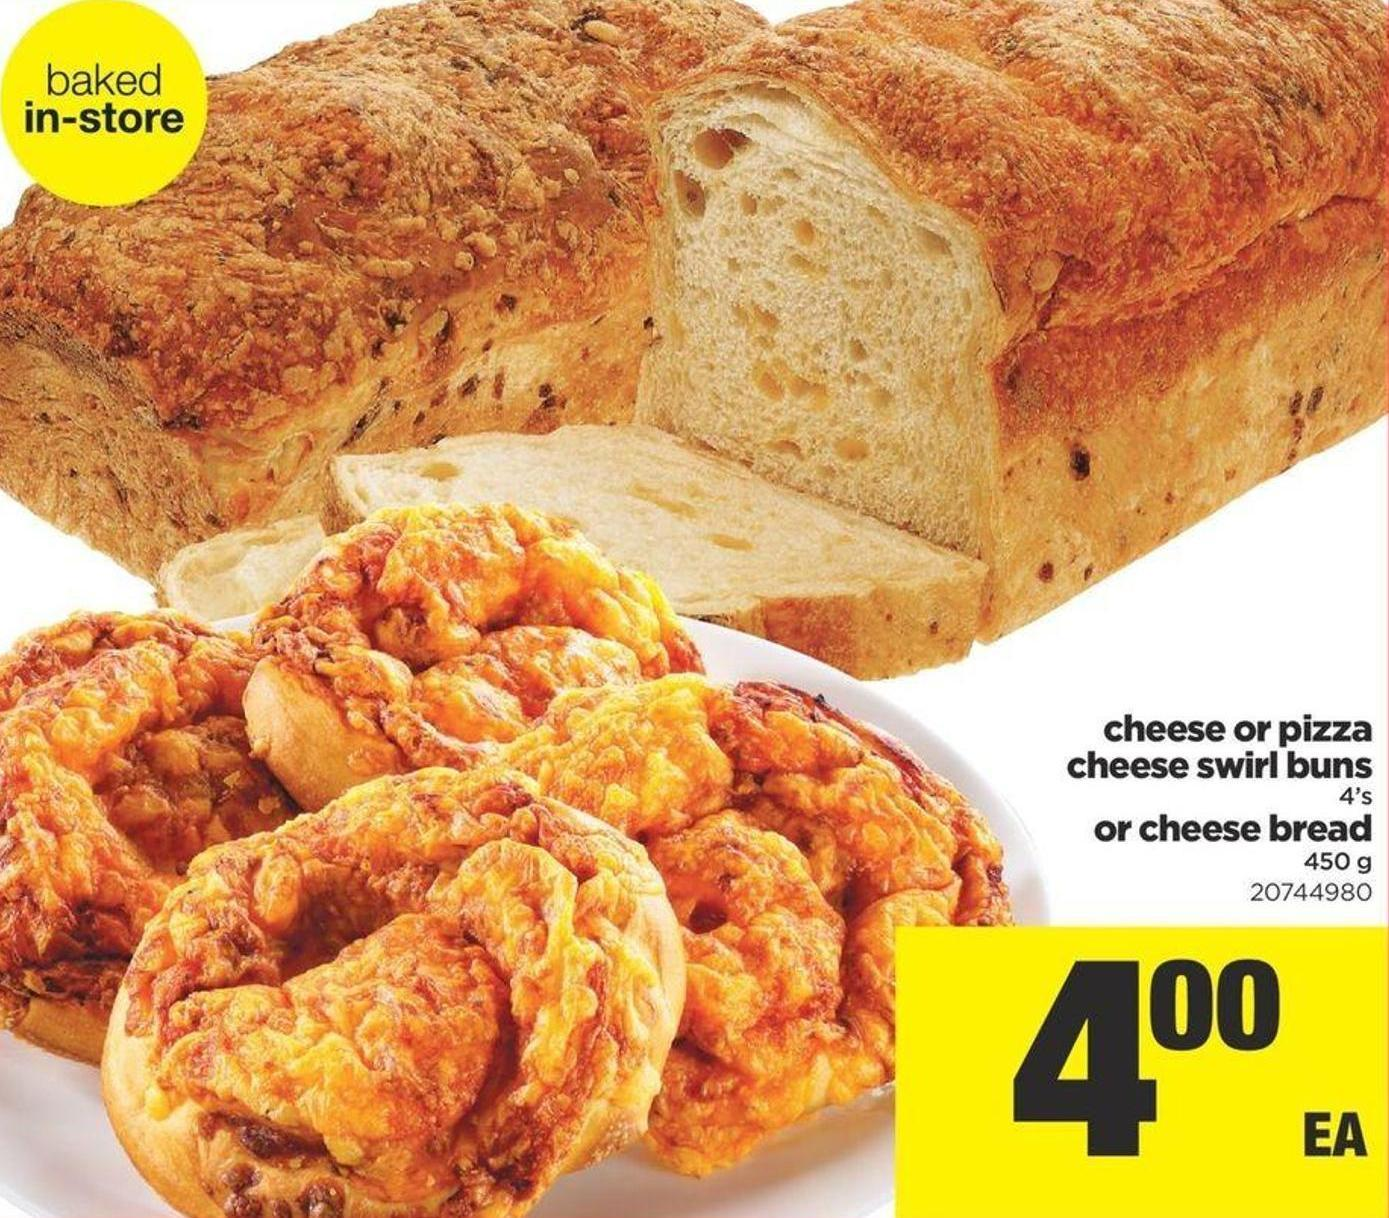 Cheese Or Pizza Cheese Swirl Buns 4's Or Cheese Bread 450 G